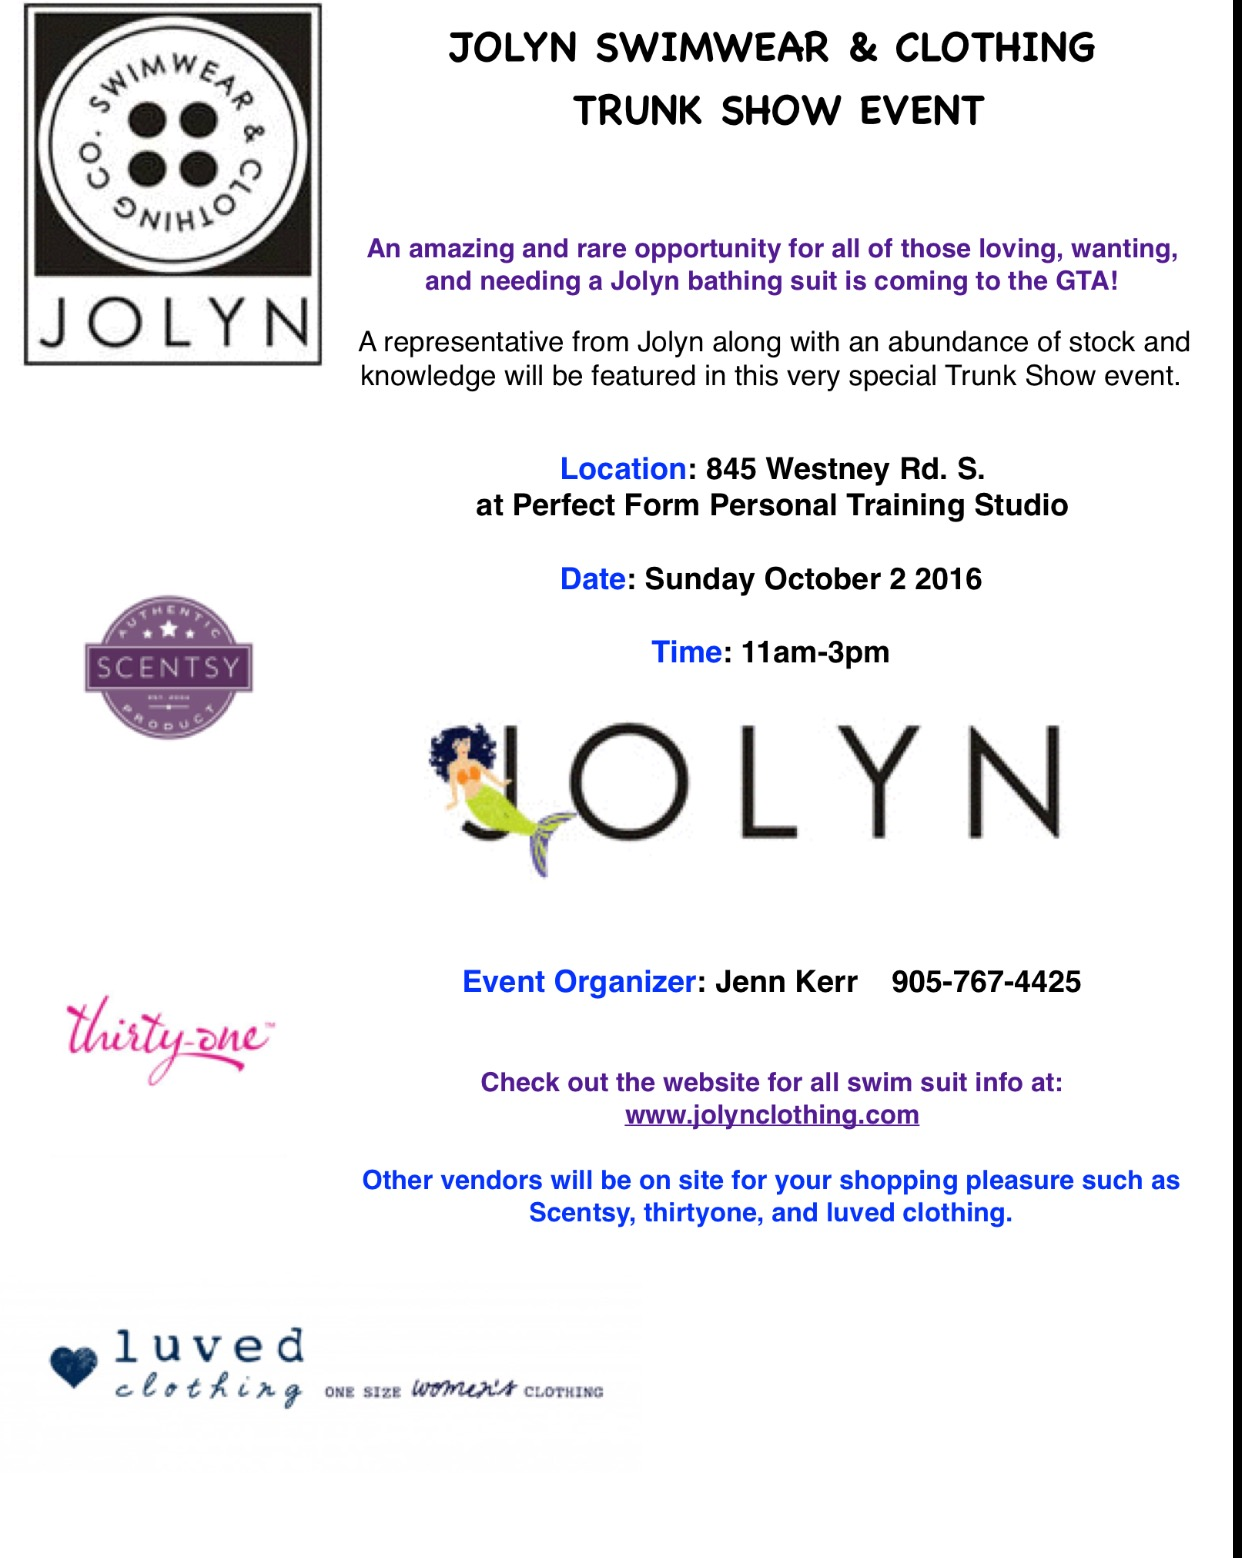 Hope to see all my Perfect Form Personal training Studio peeps at this super fun event!